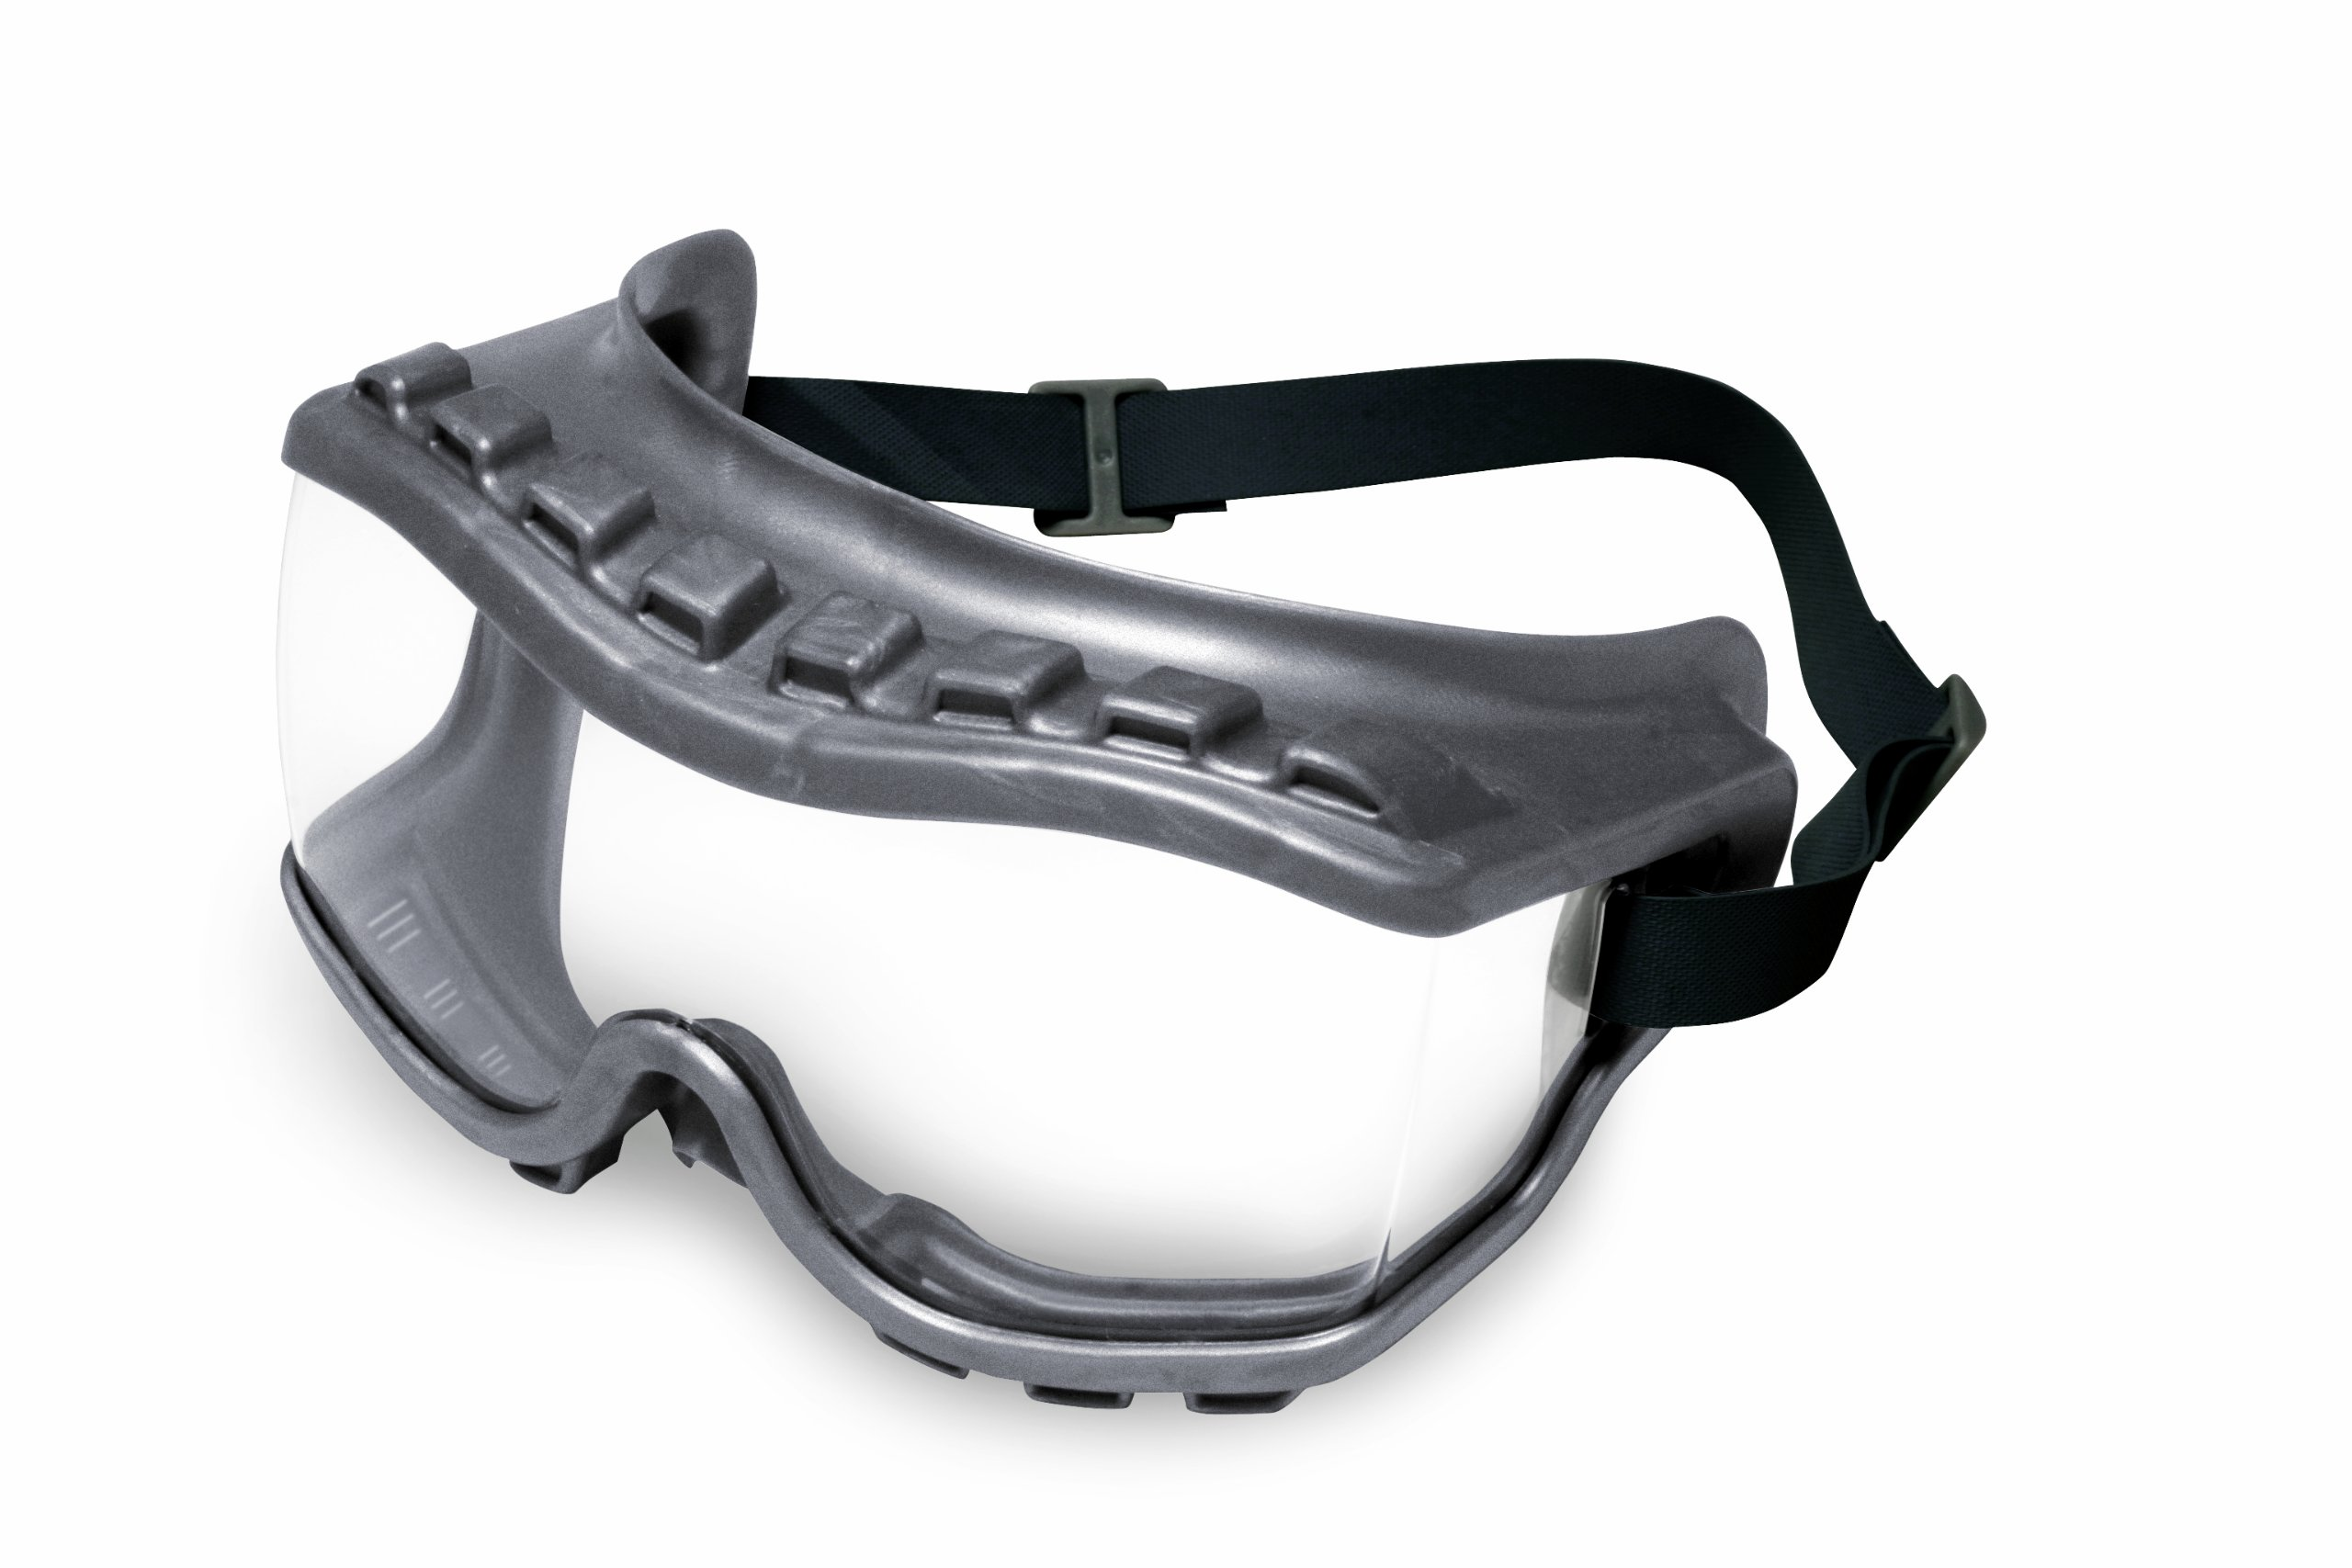 UVEX by Honeywell 763-S3810 Strategy Goggle, Indirect Vent, Neoprene Headband Gray Body, Clear Lens, Uvextra Anti-fog Coating, Clear